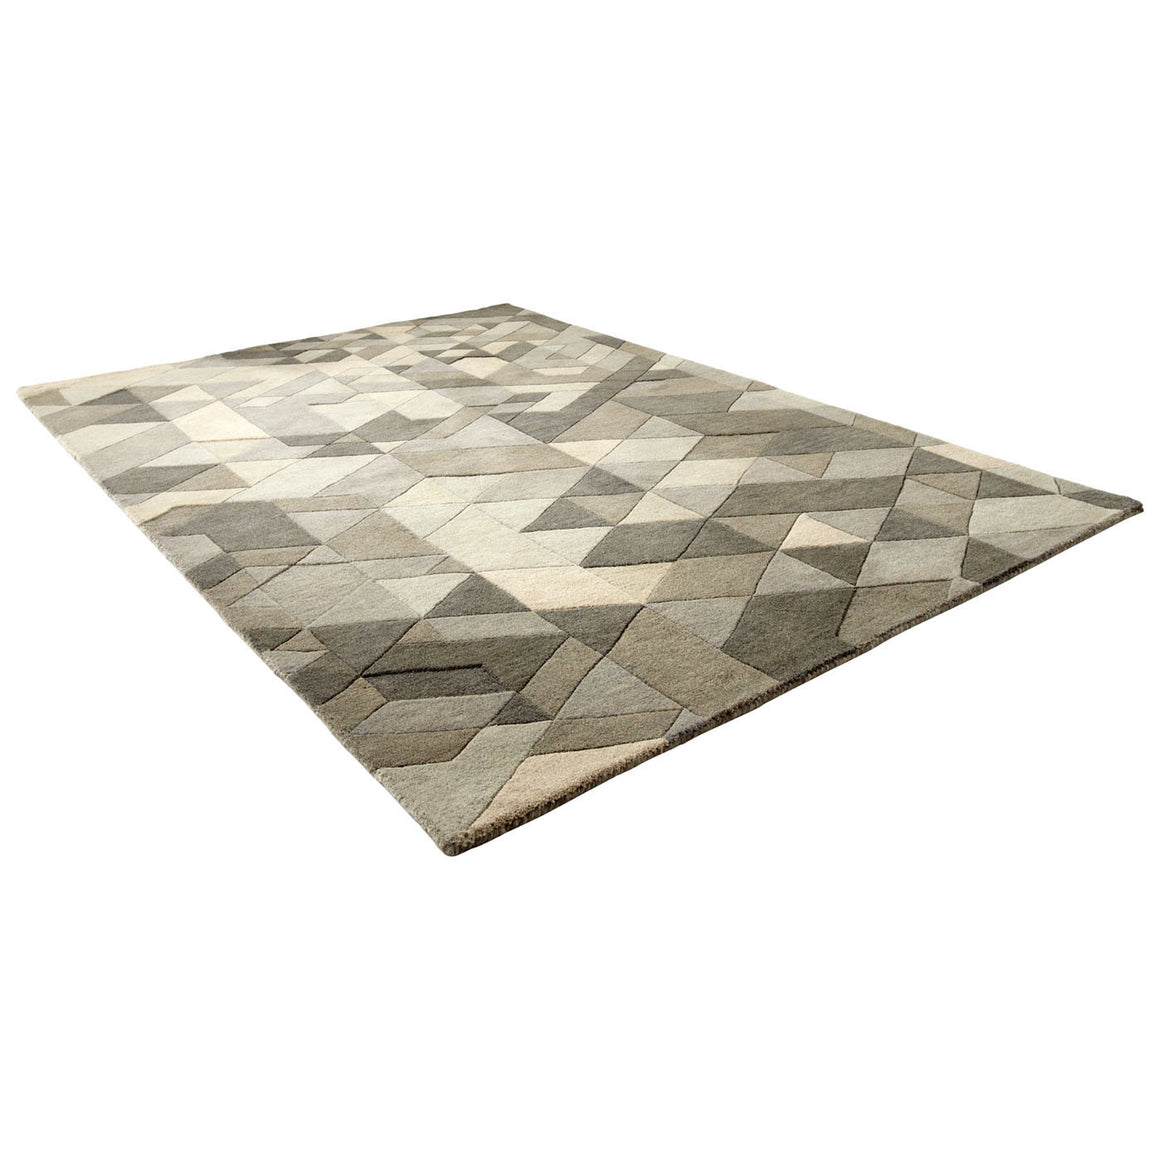 Facets Rug 06047 by Cyan Design